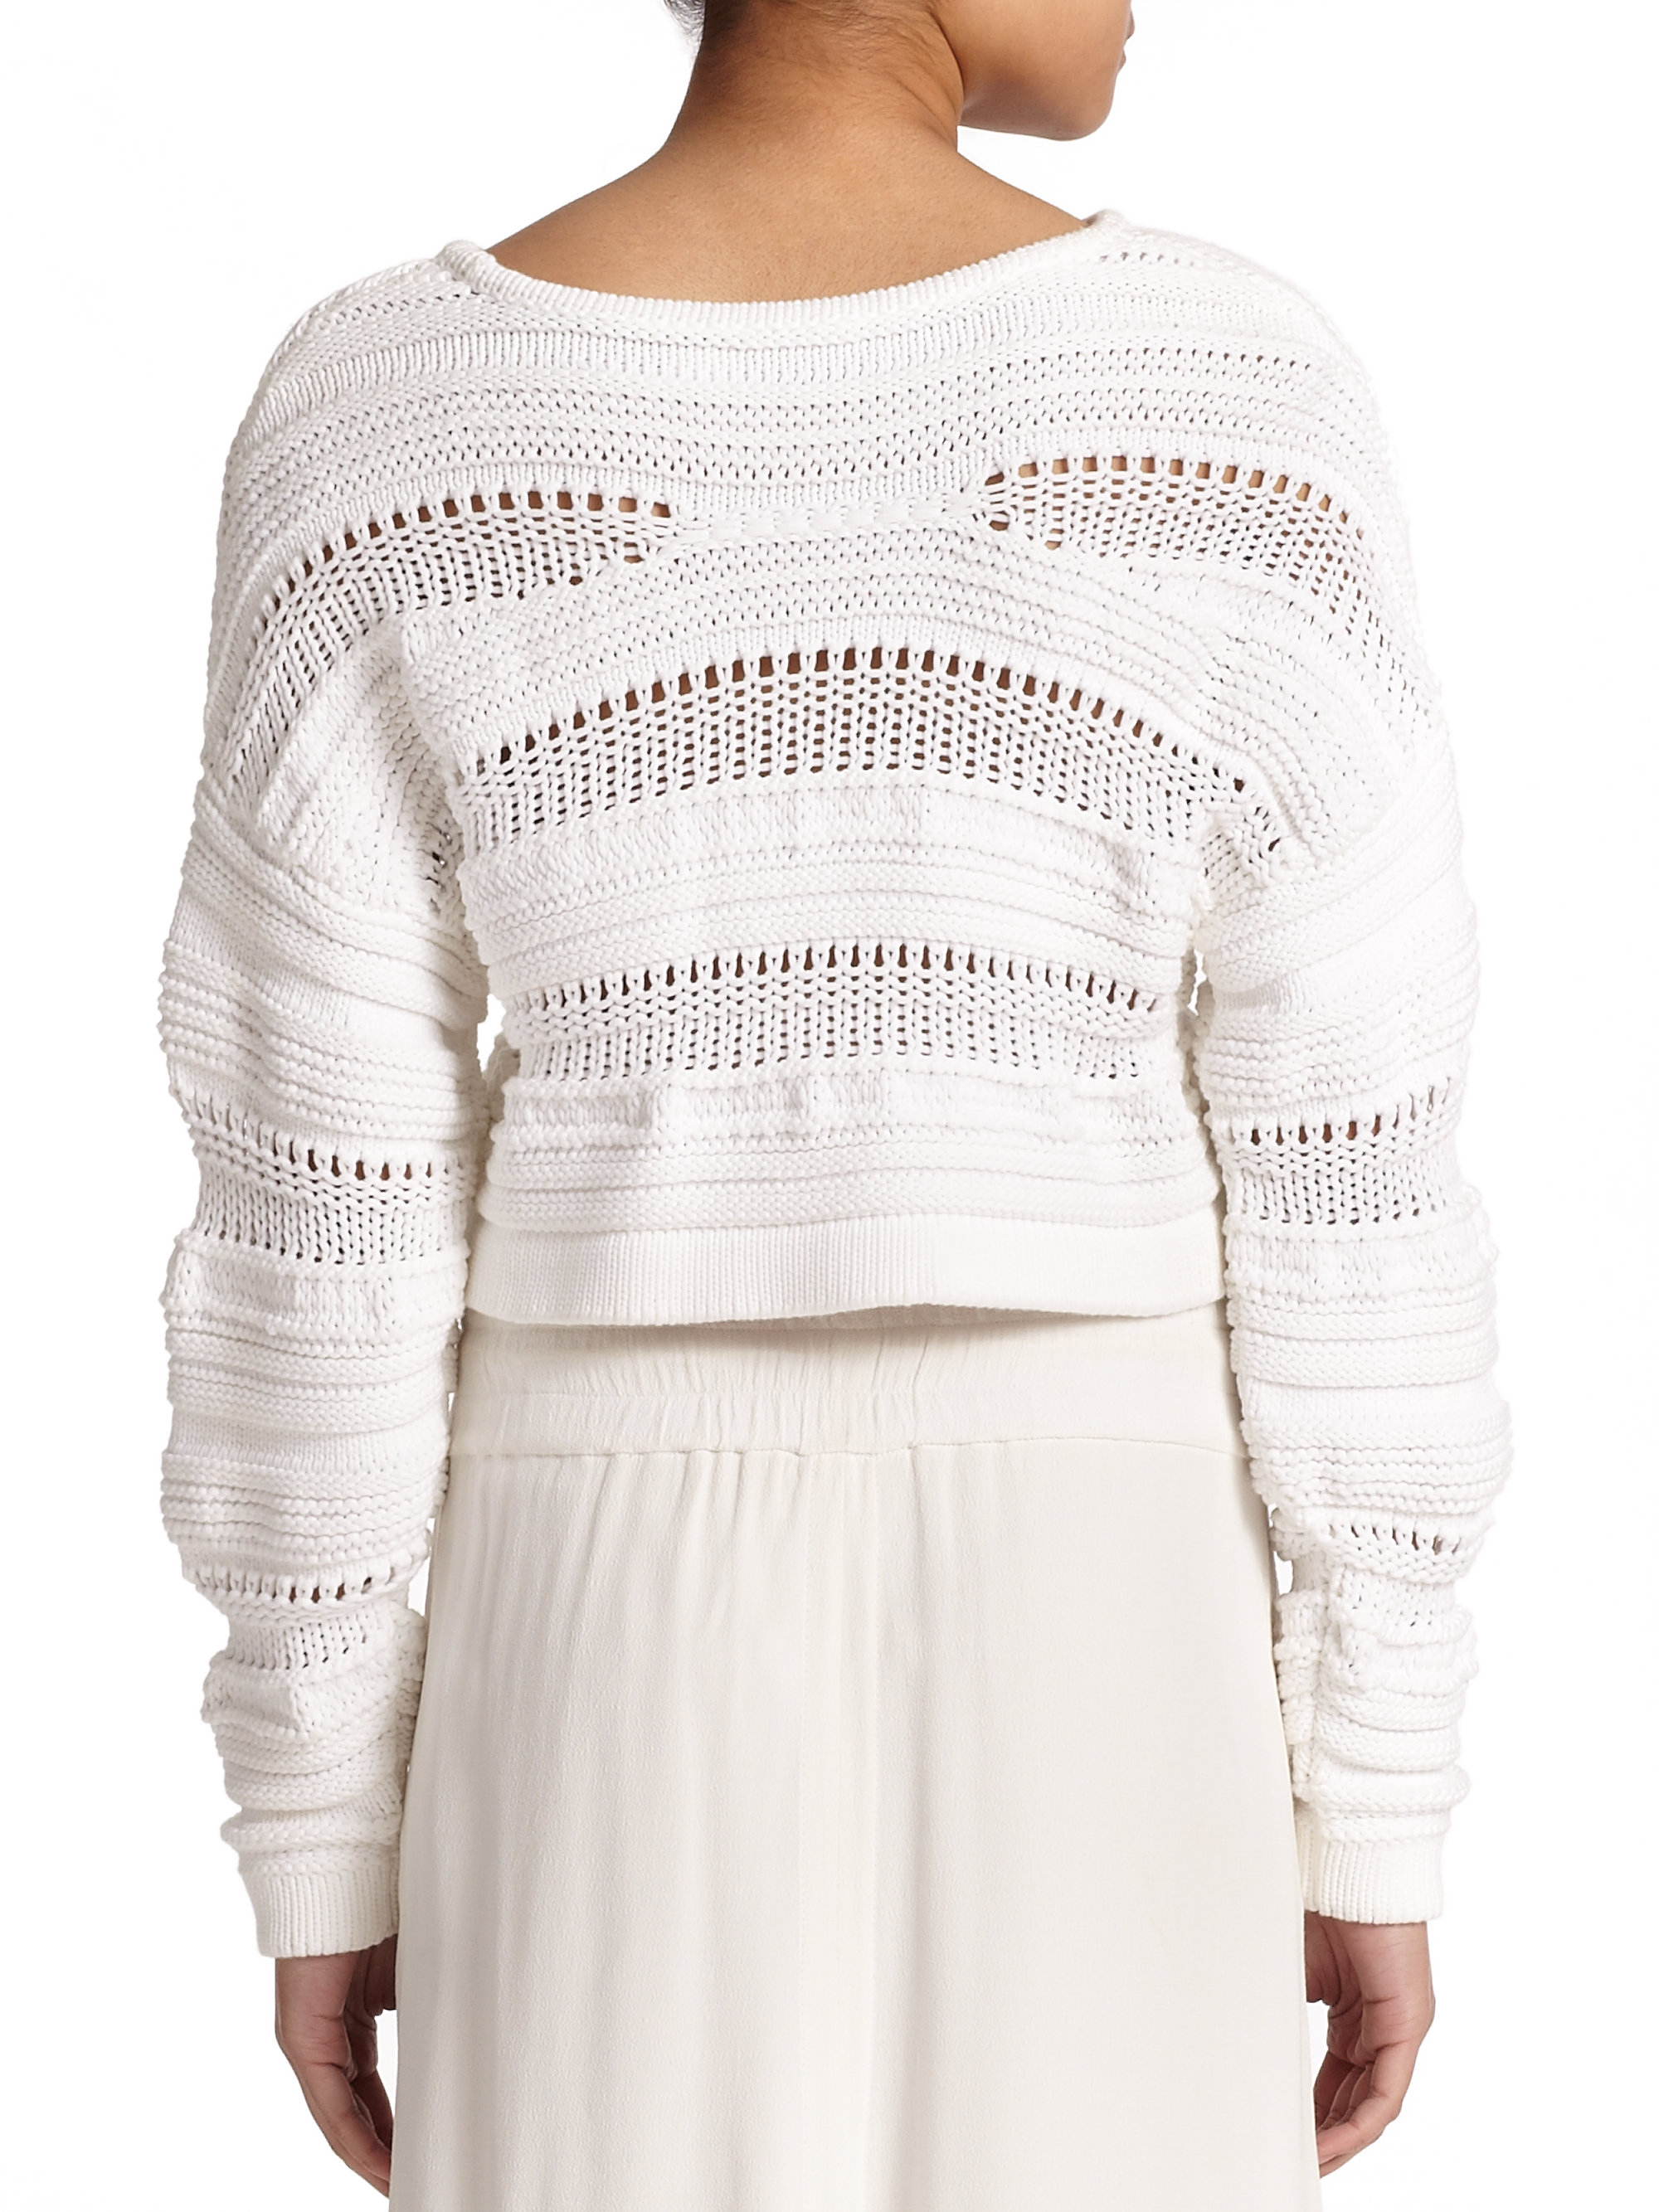 0a2b99e8e7ddb6 Lyst - Helmut Lang Open-knit Cropped Sweater in White